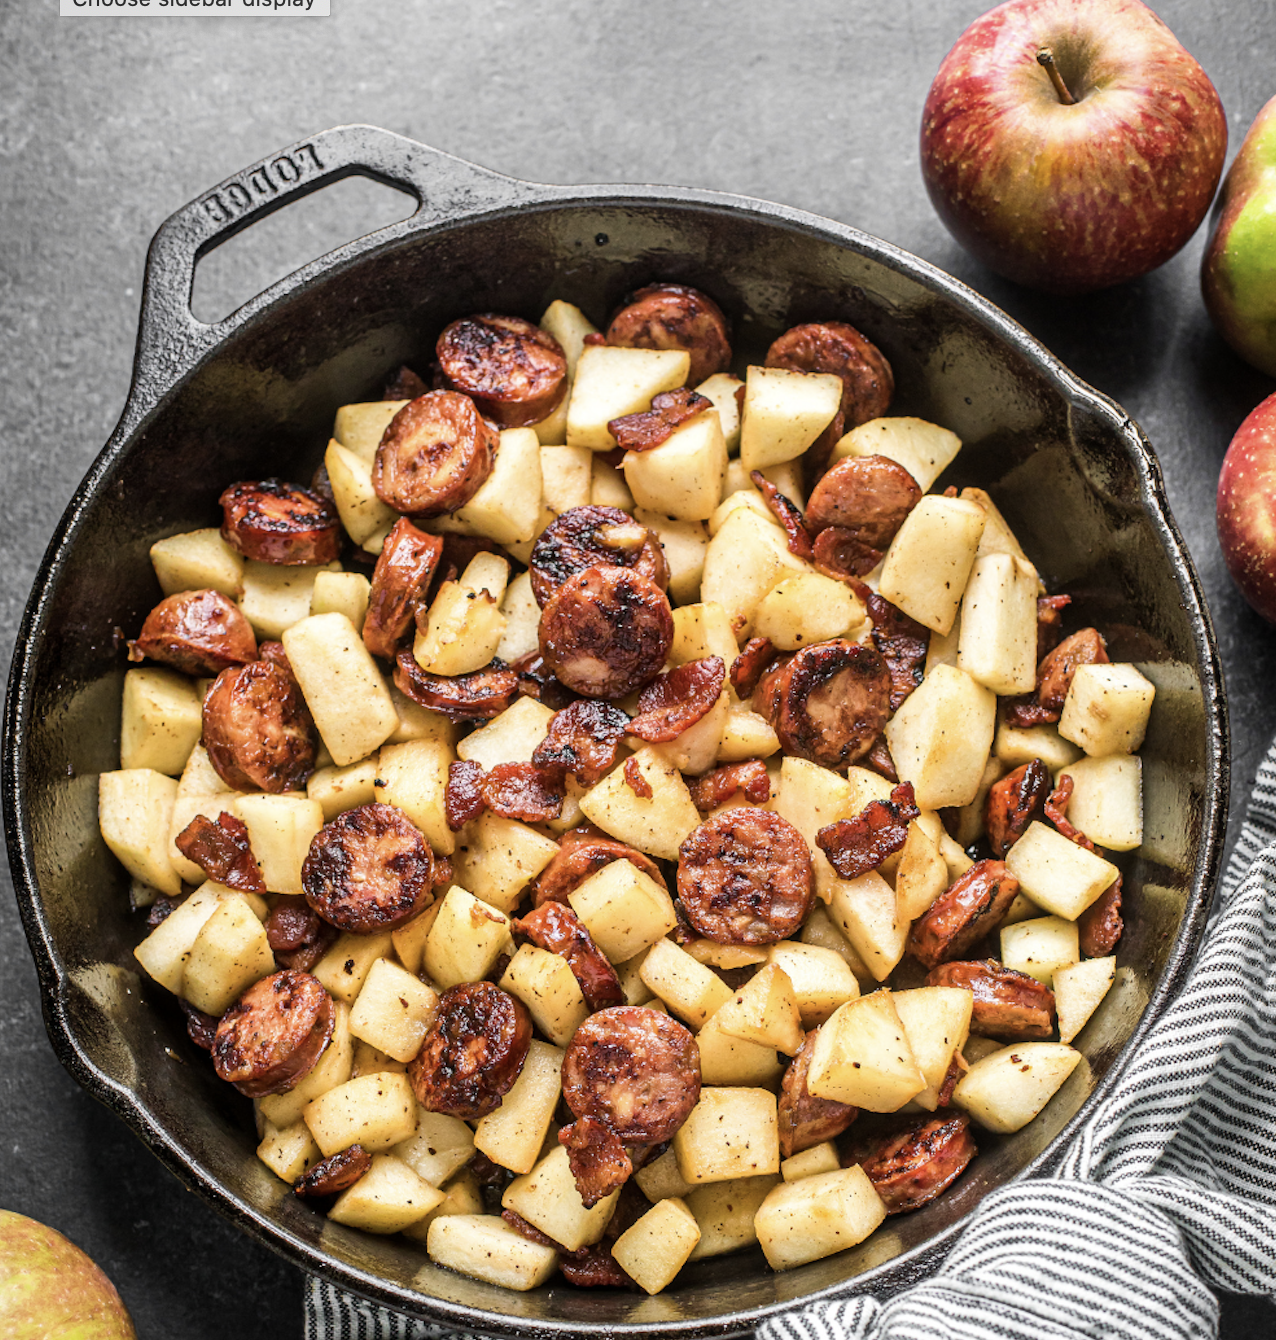 Sausage, Bacon and Apple Breakfast Skillet